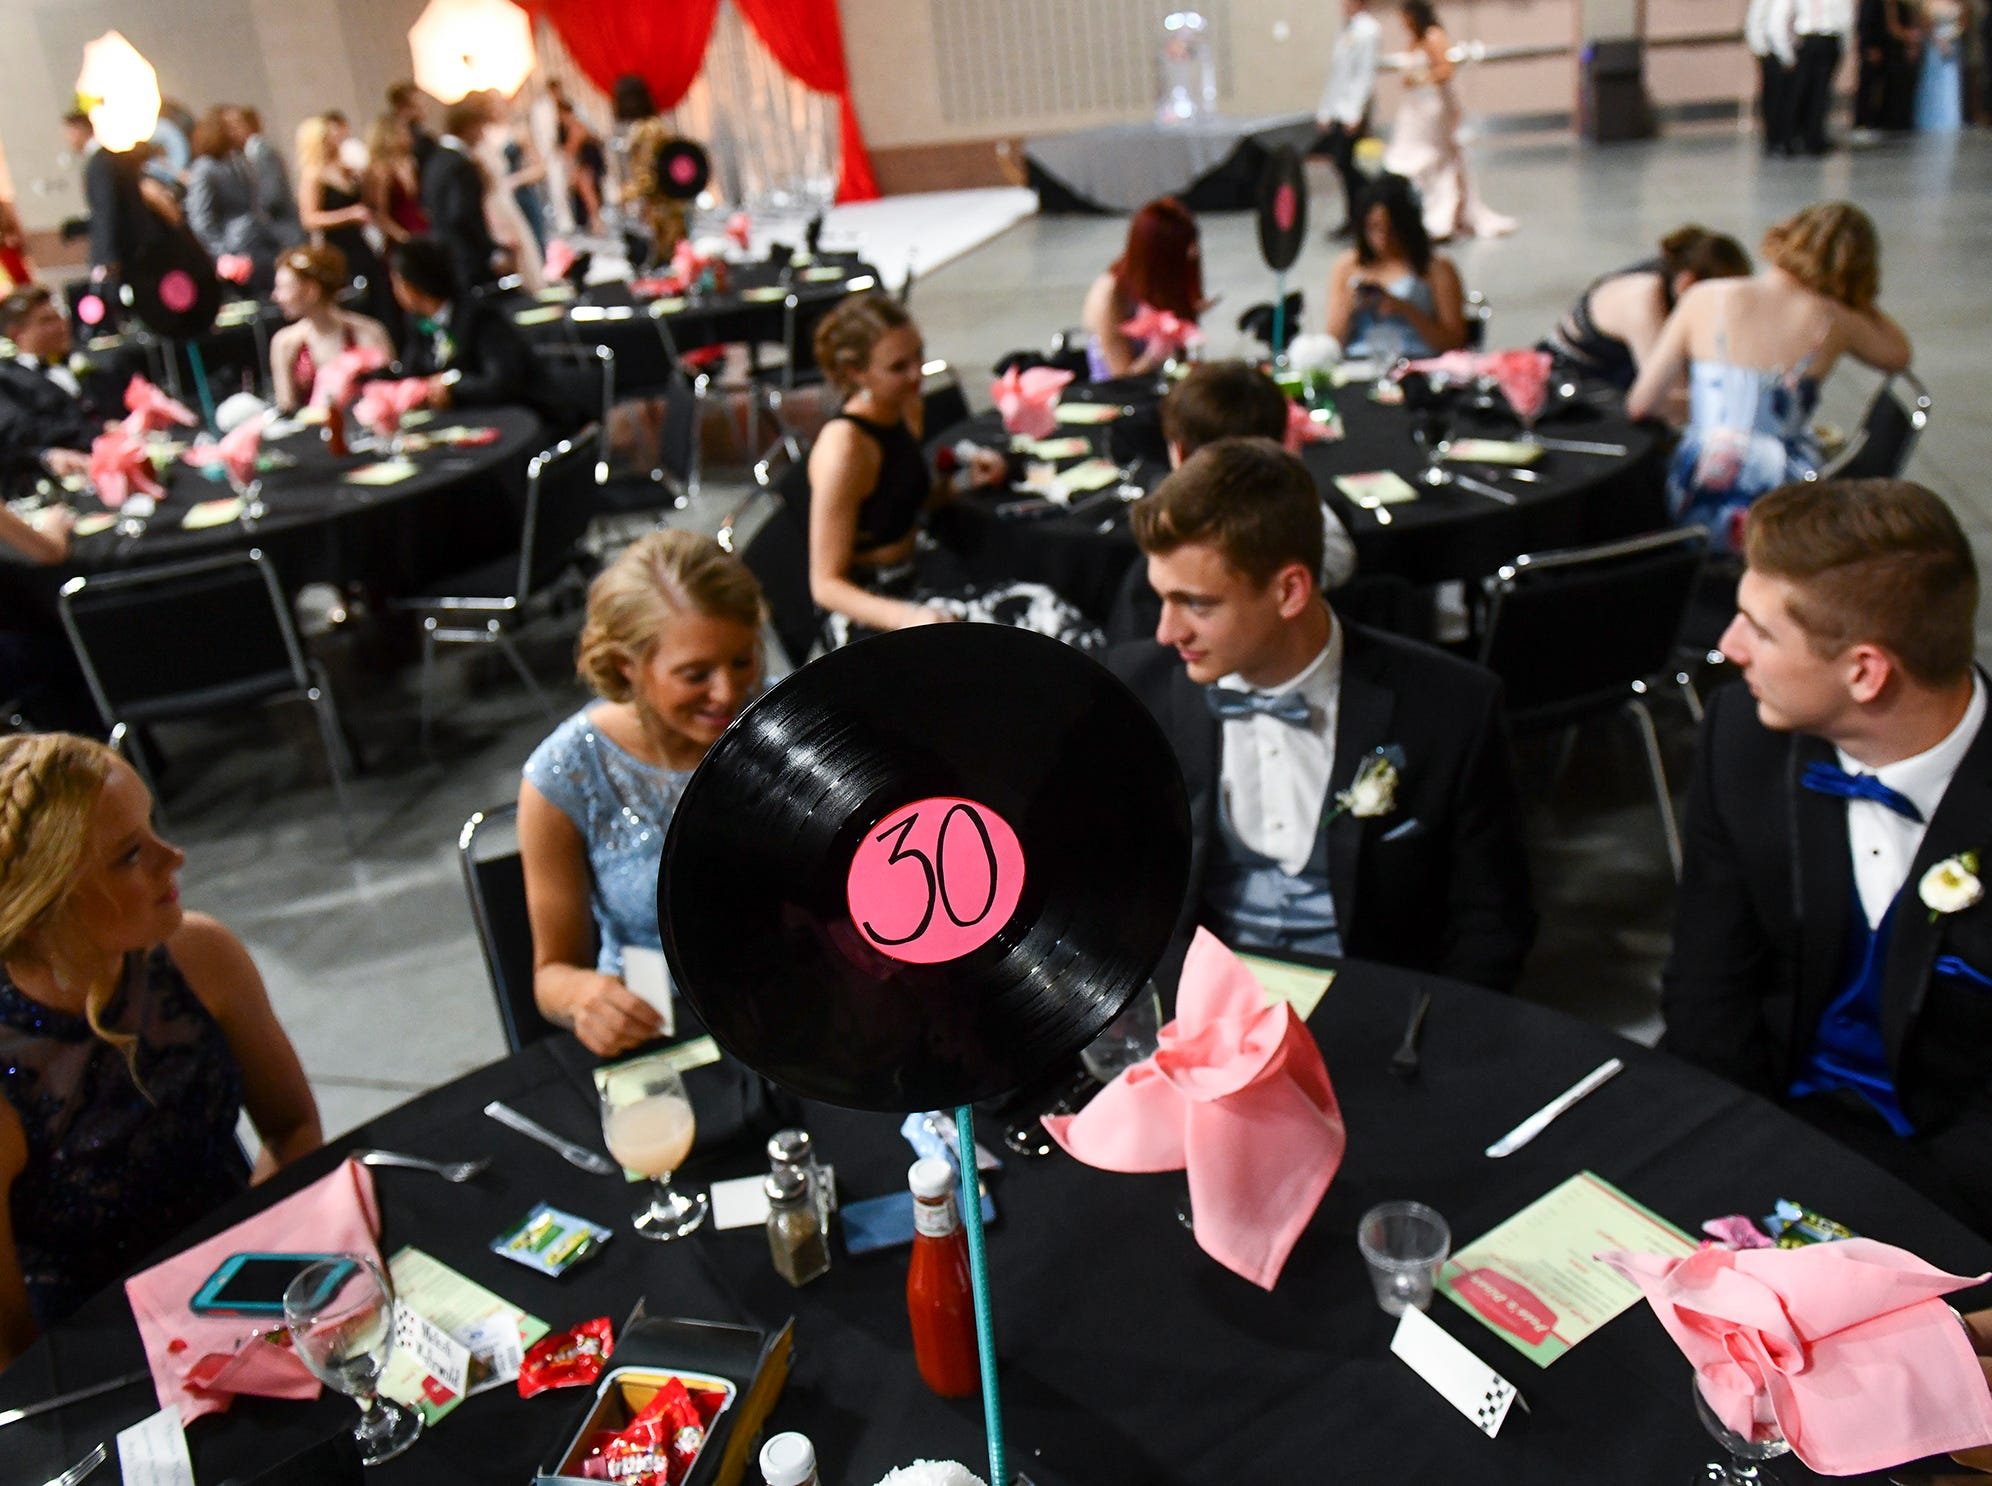 Couples take their seats for Sartell prom Saturday in St. Cloud.